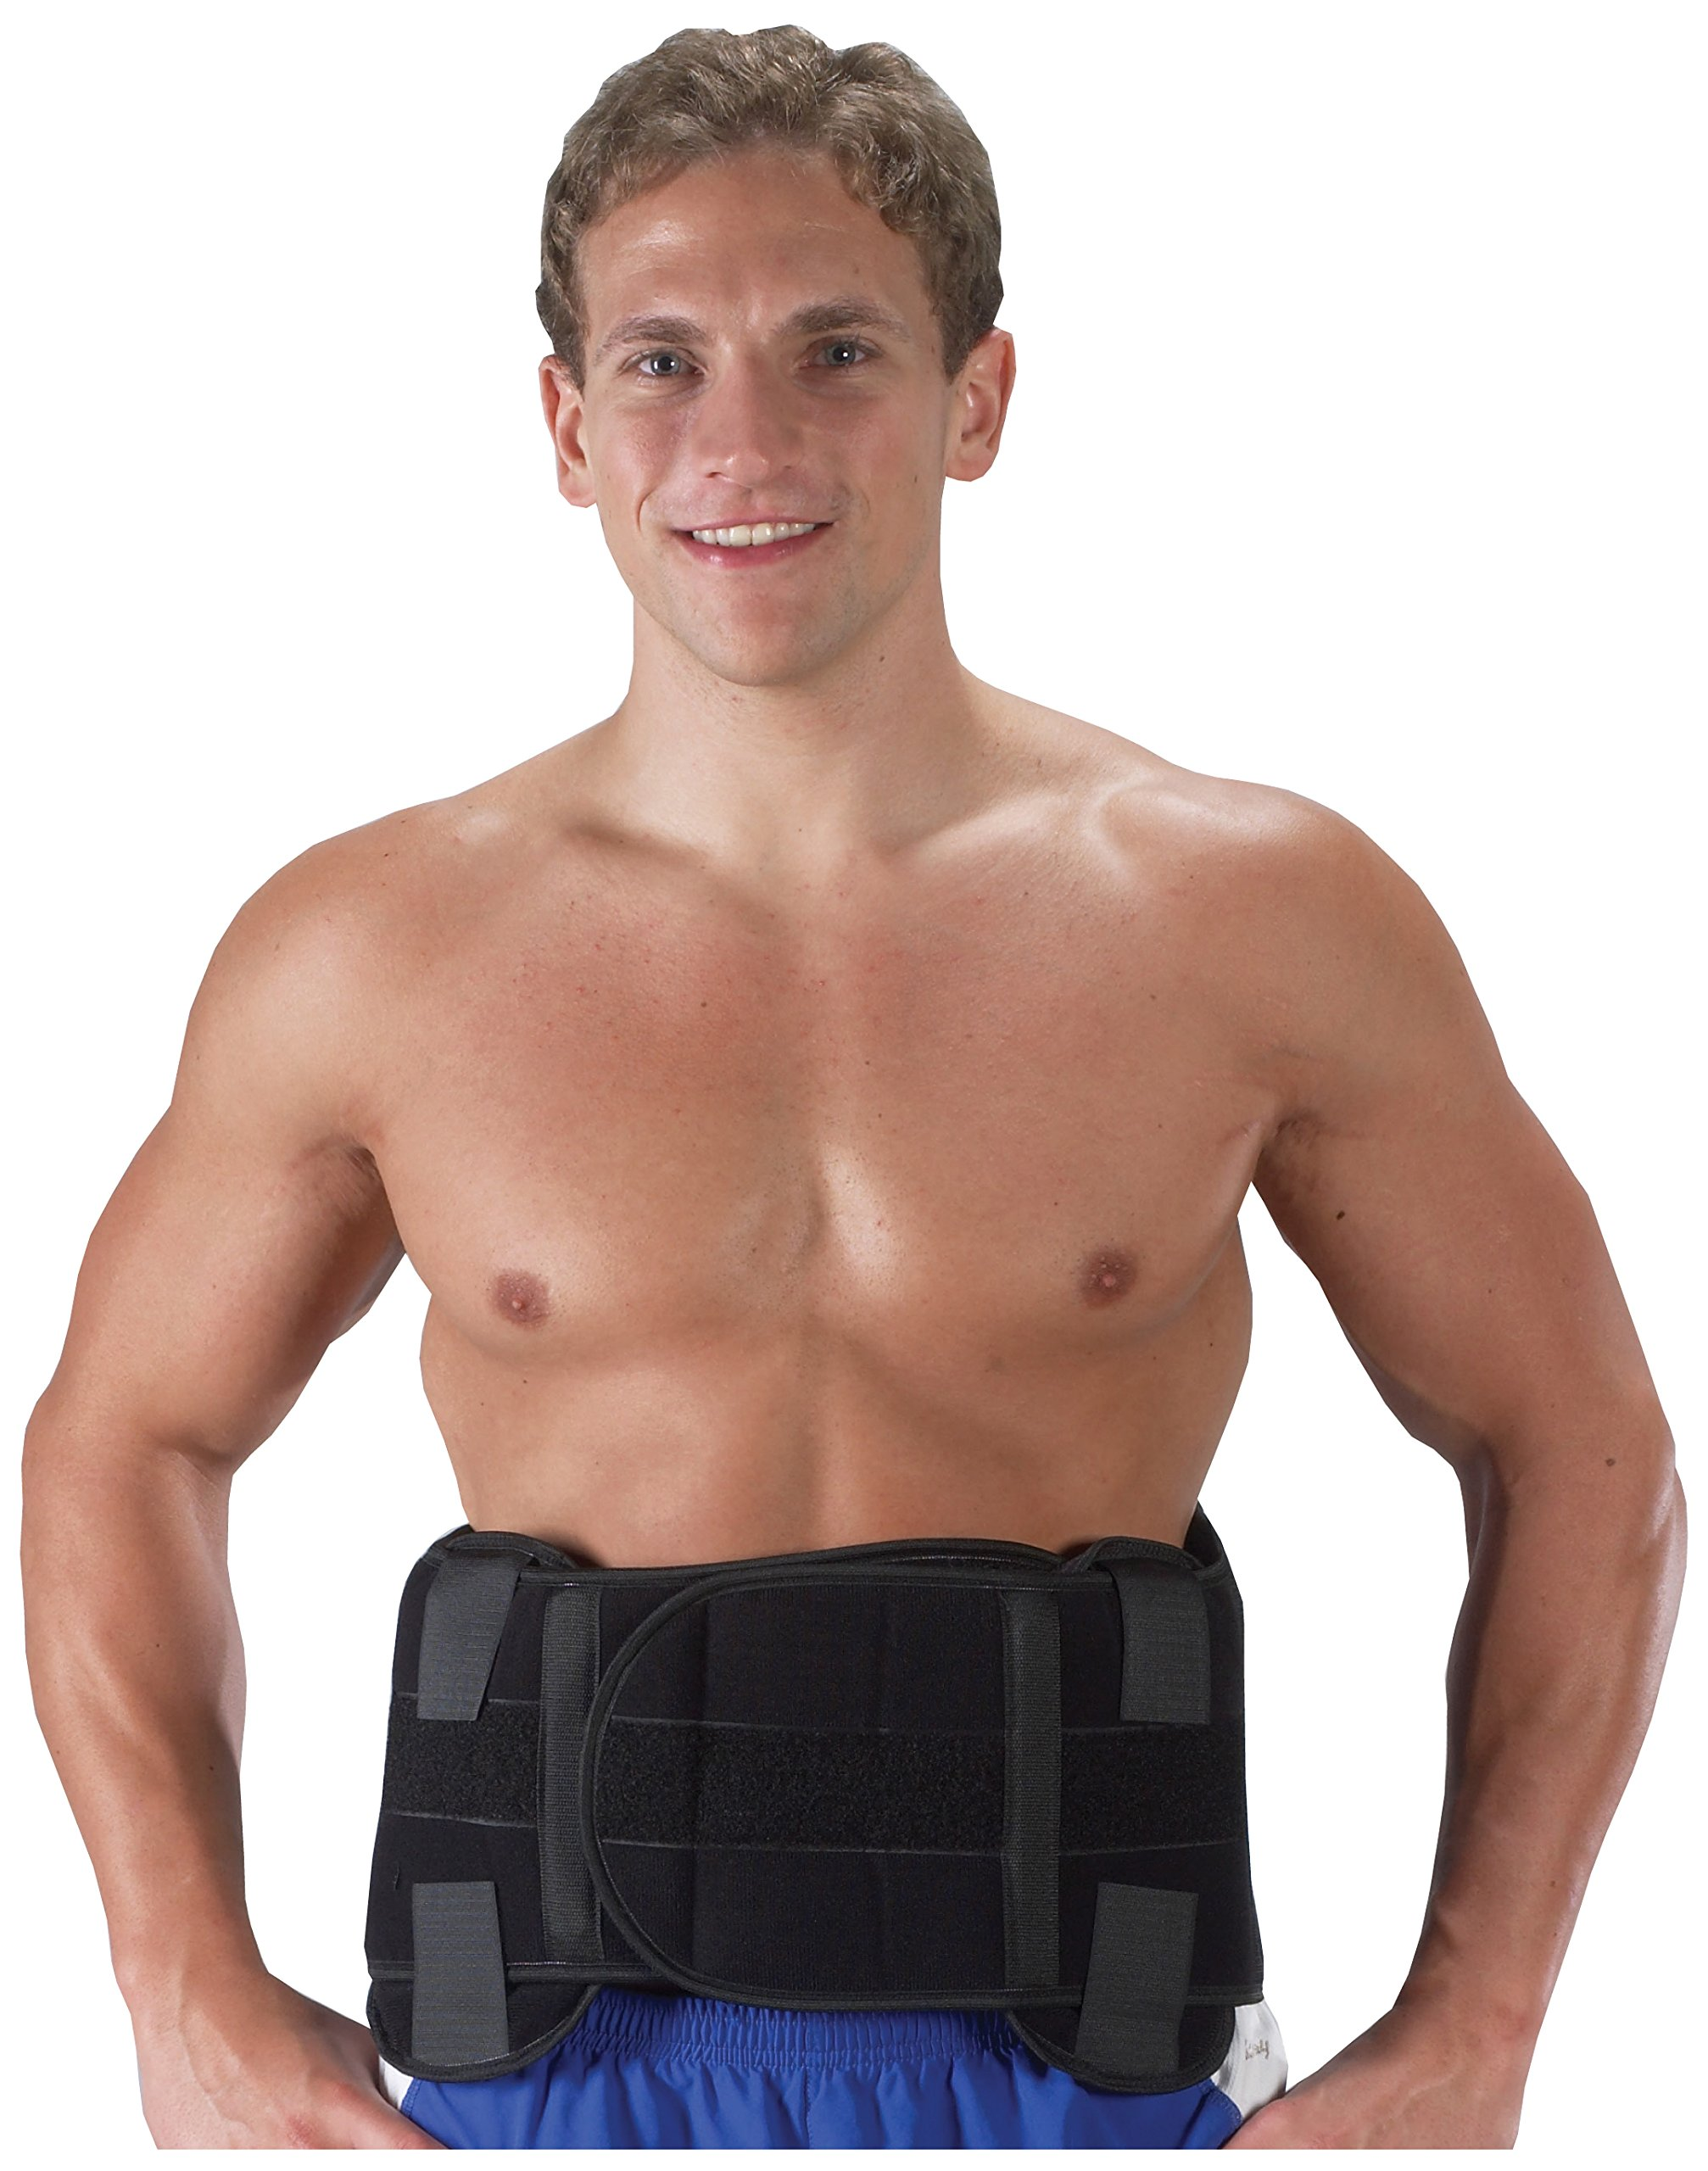 Bilt-Rite Mastex Health Lumbo Protech Extreme Back Support, Black, 2X-Large by Bilt-Rite Mastex Health